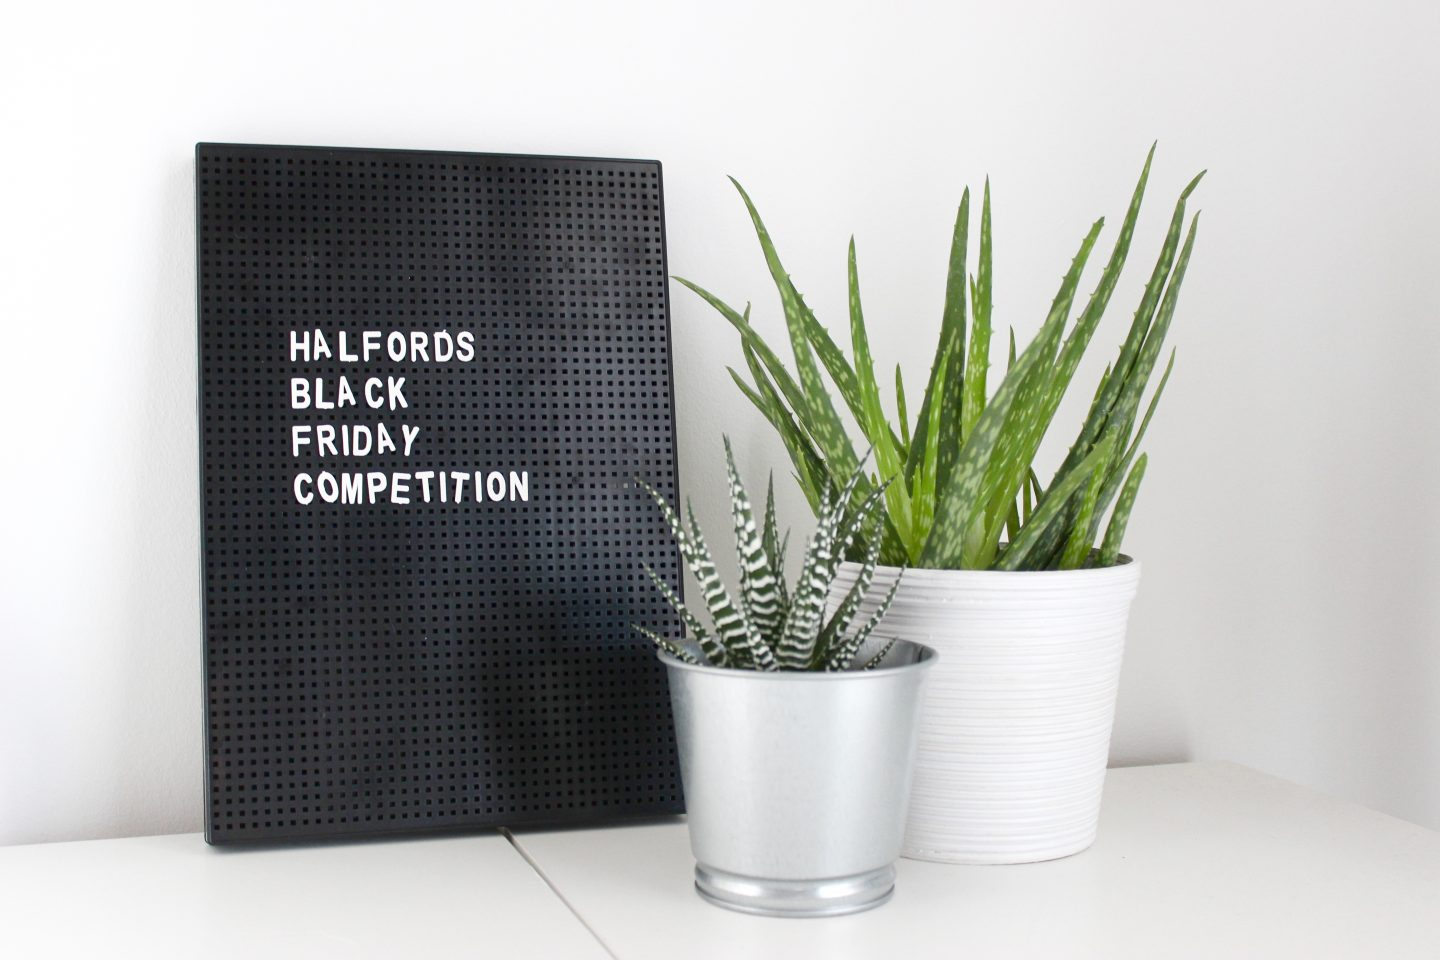 Halfords Big Black Friday Competition